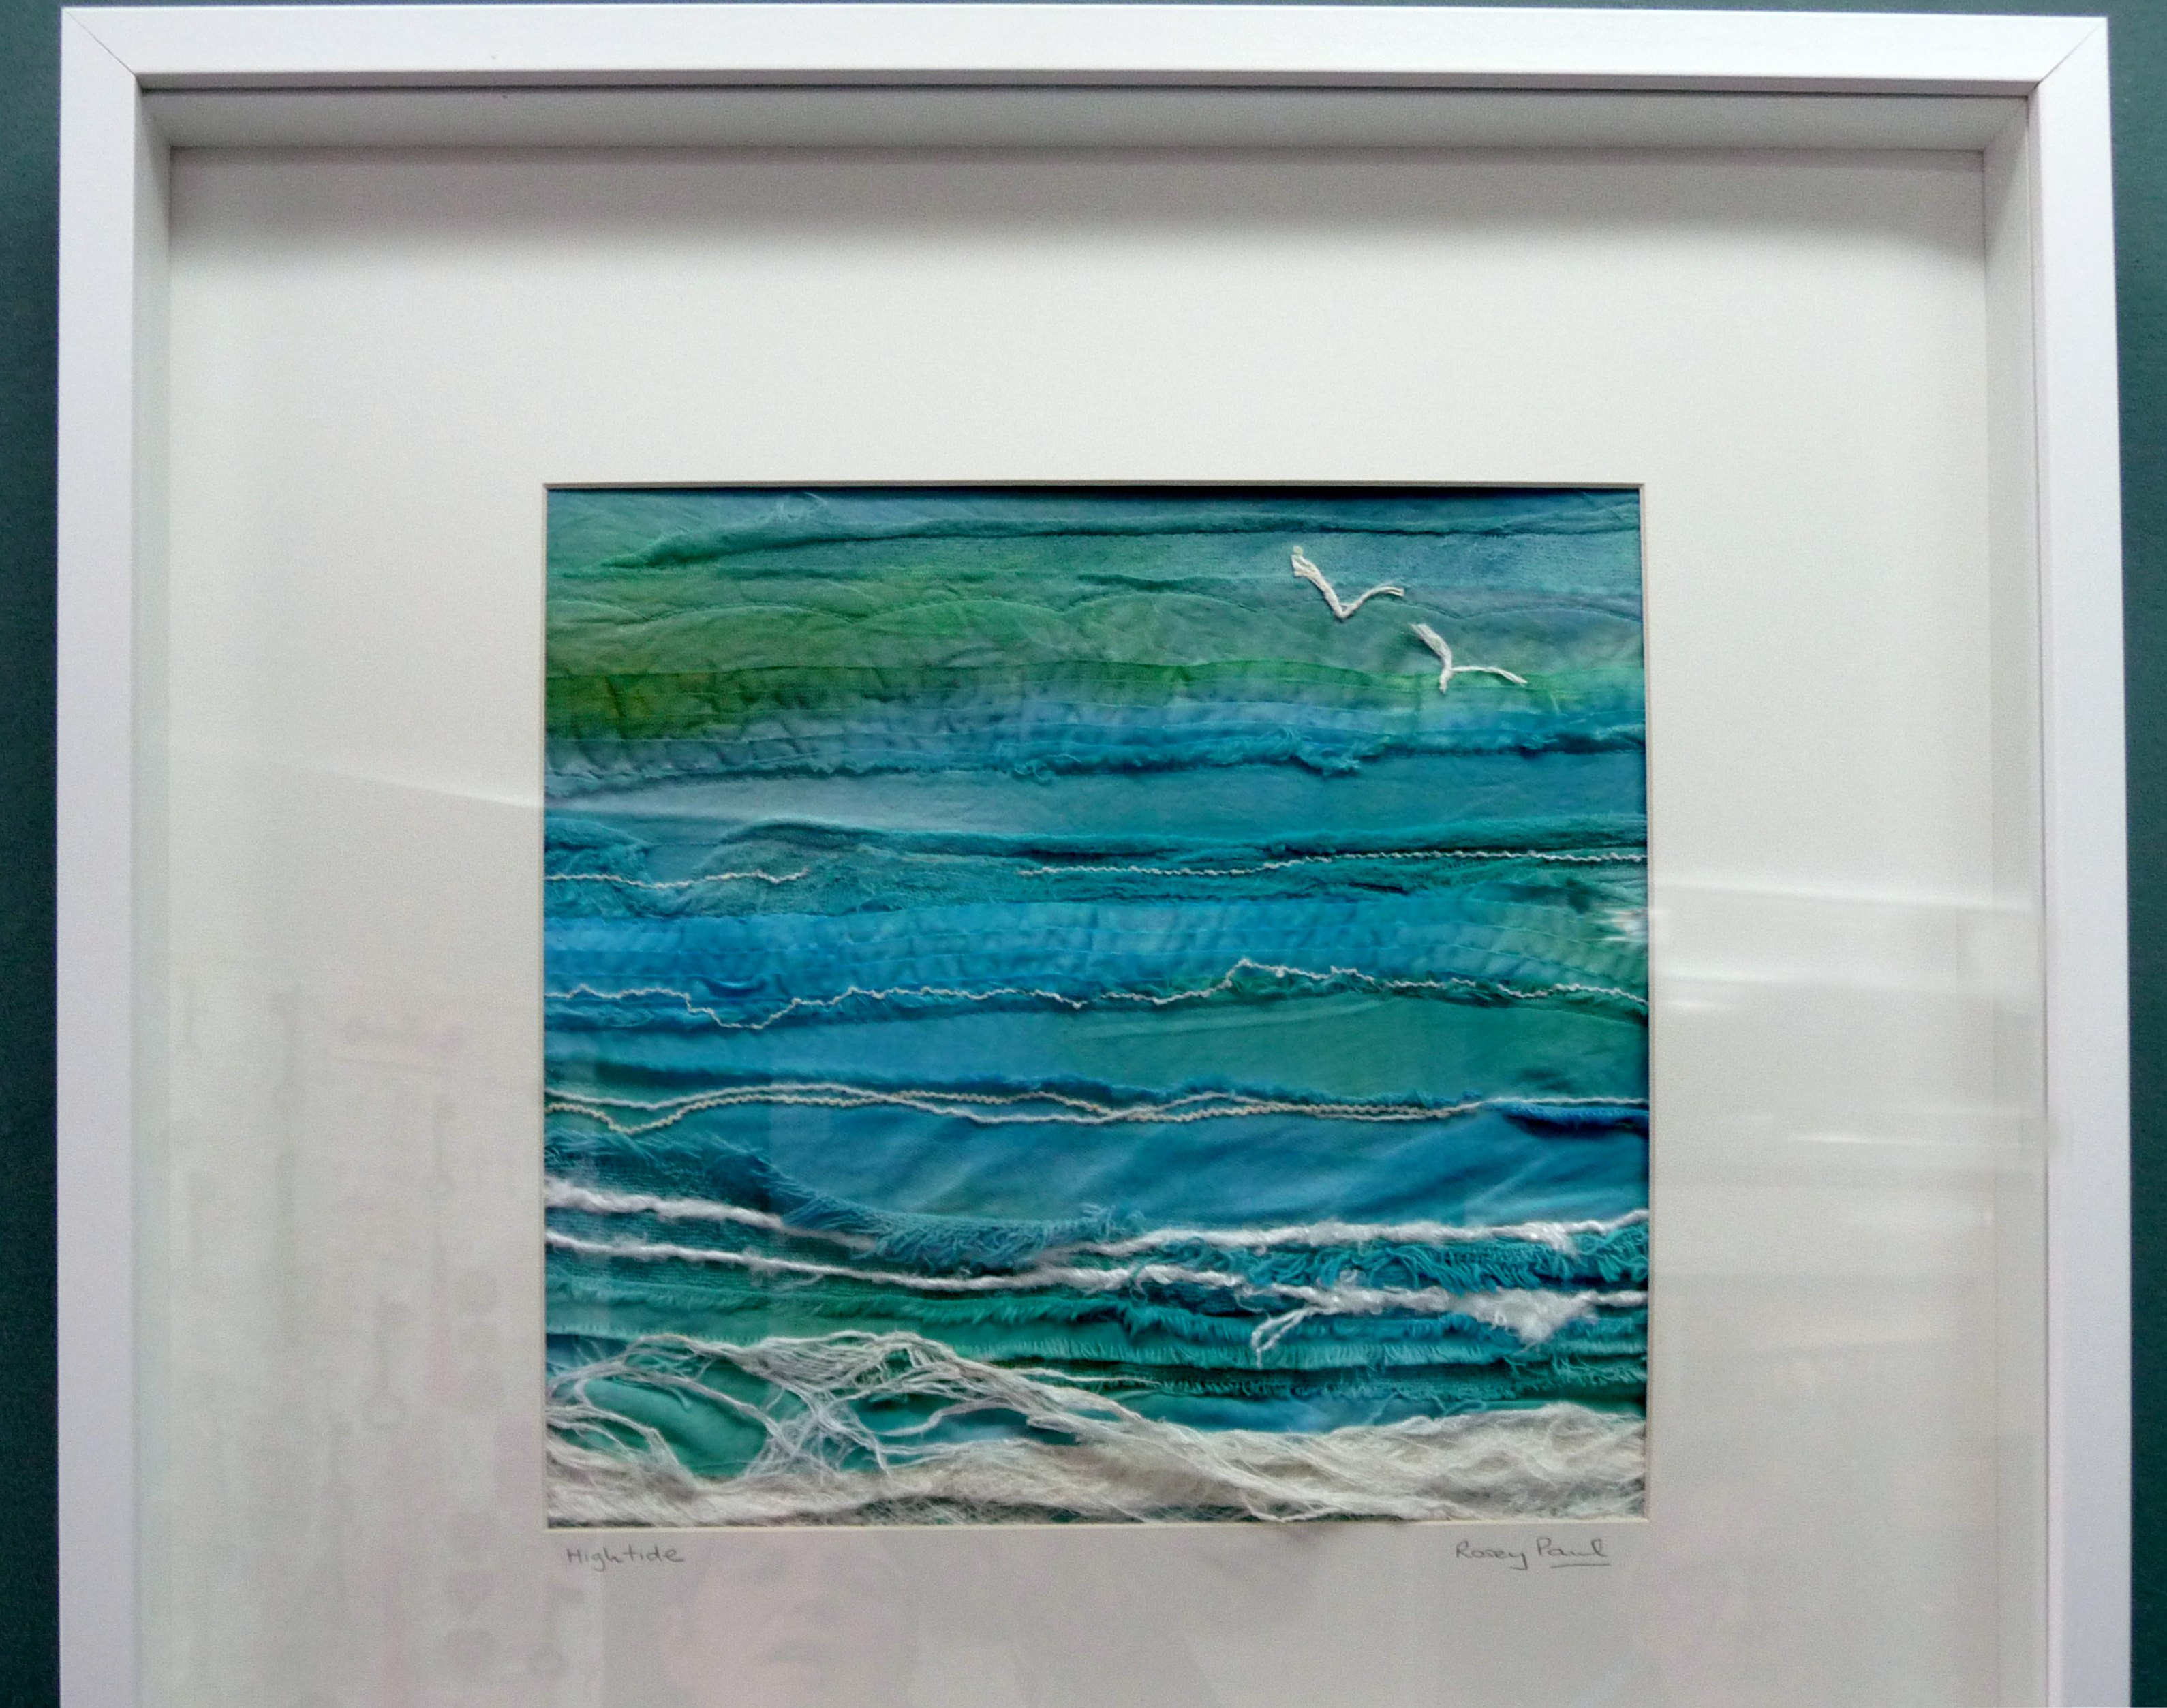 HIGH TIDE, embroidery by Rosey Paul